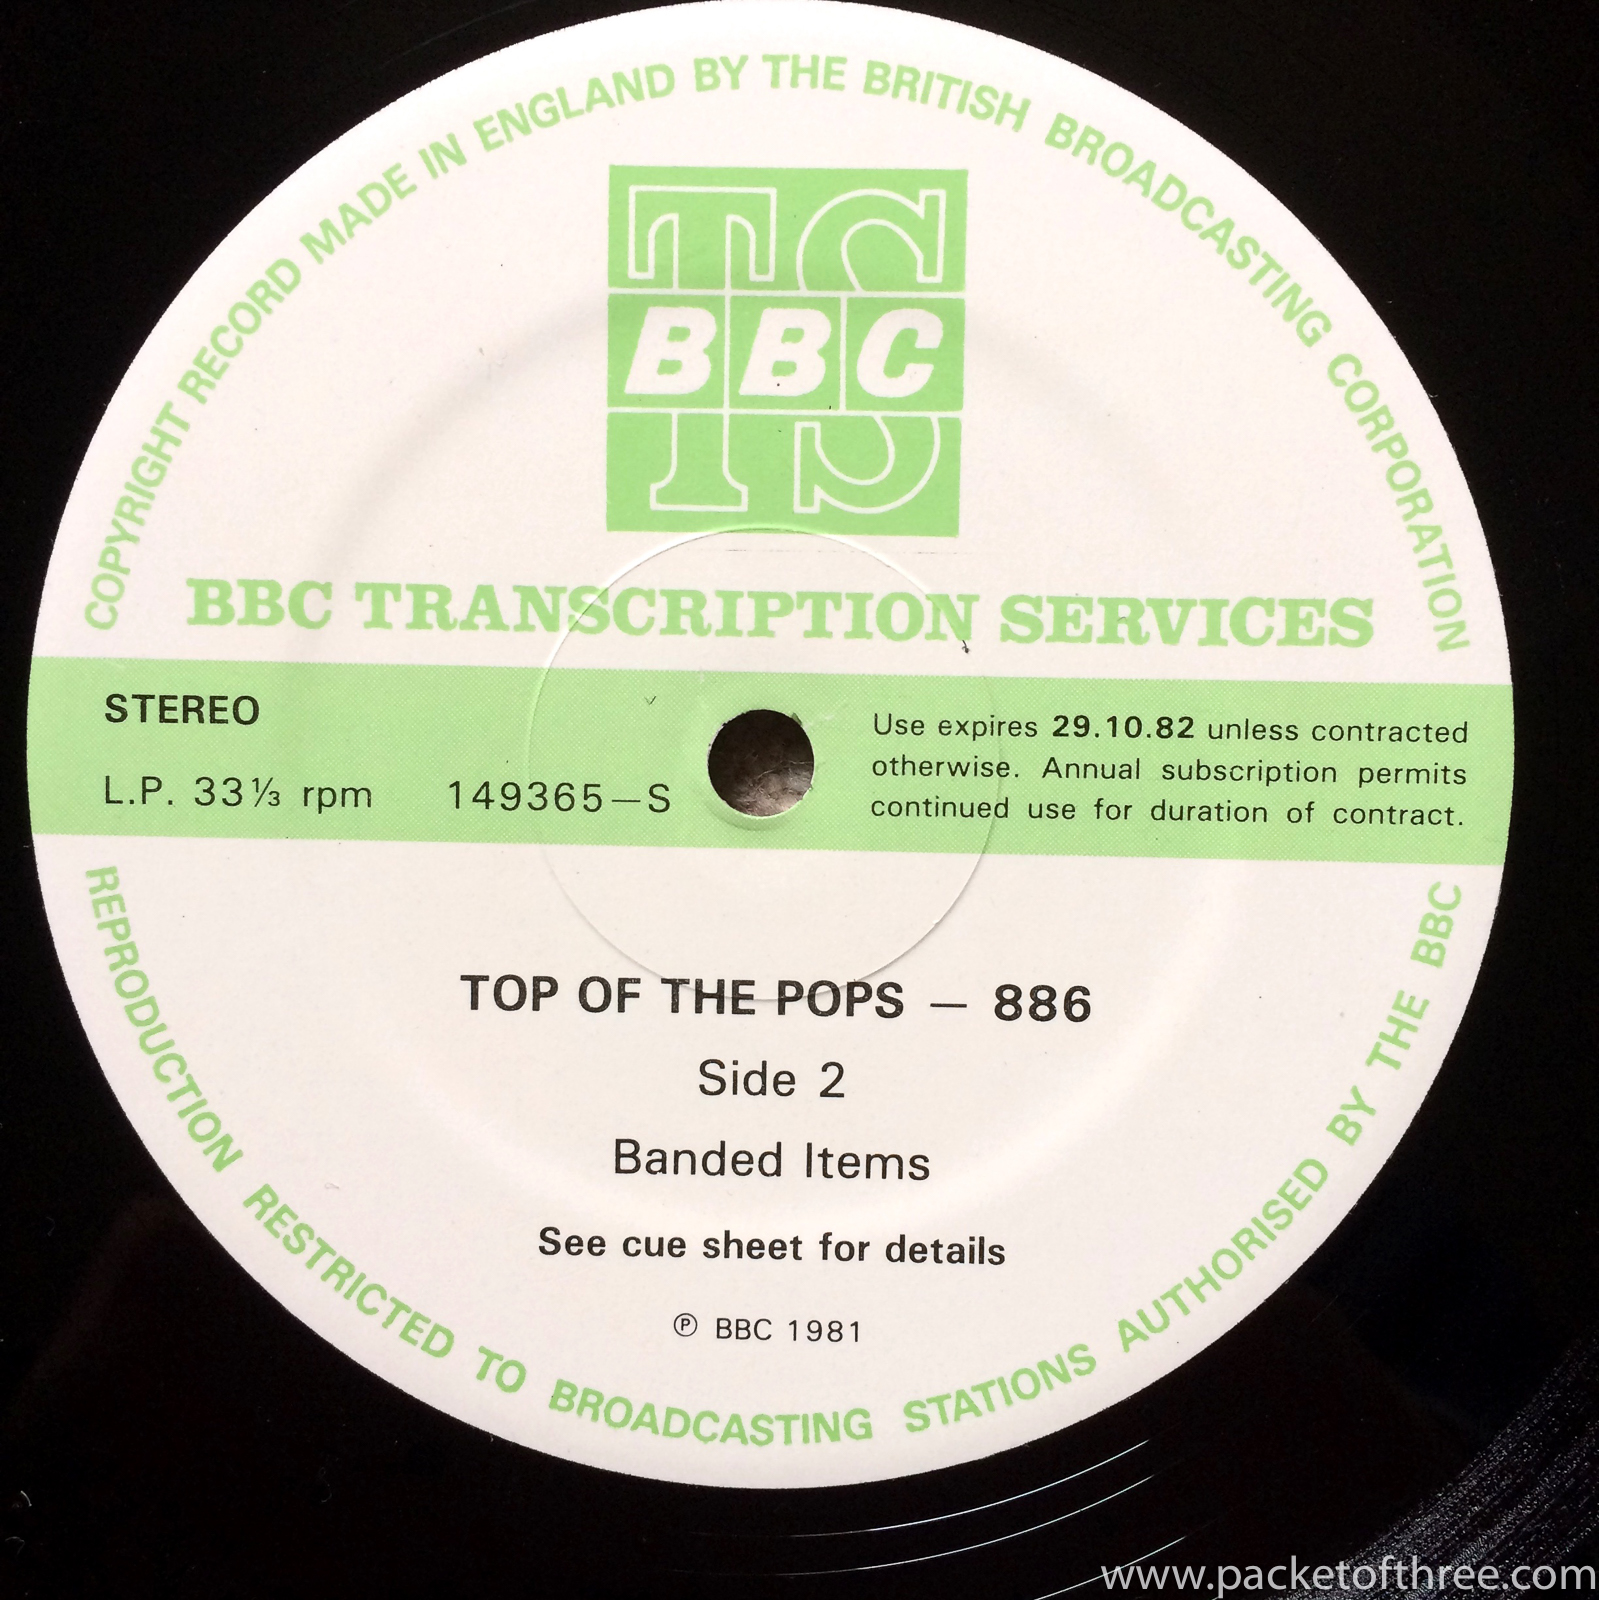 Top of the Pops 886 - packetofthree